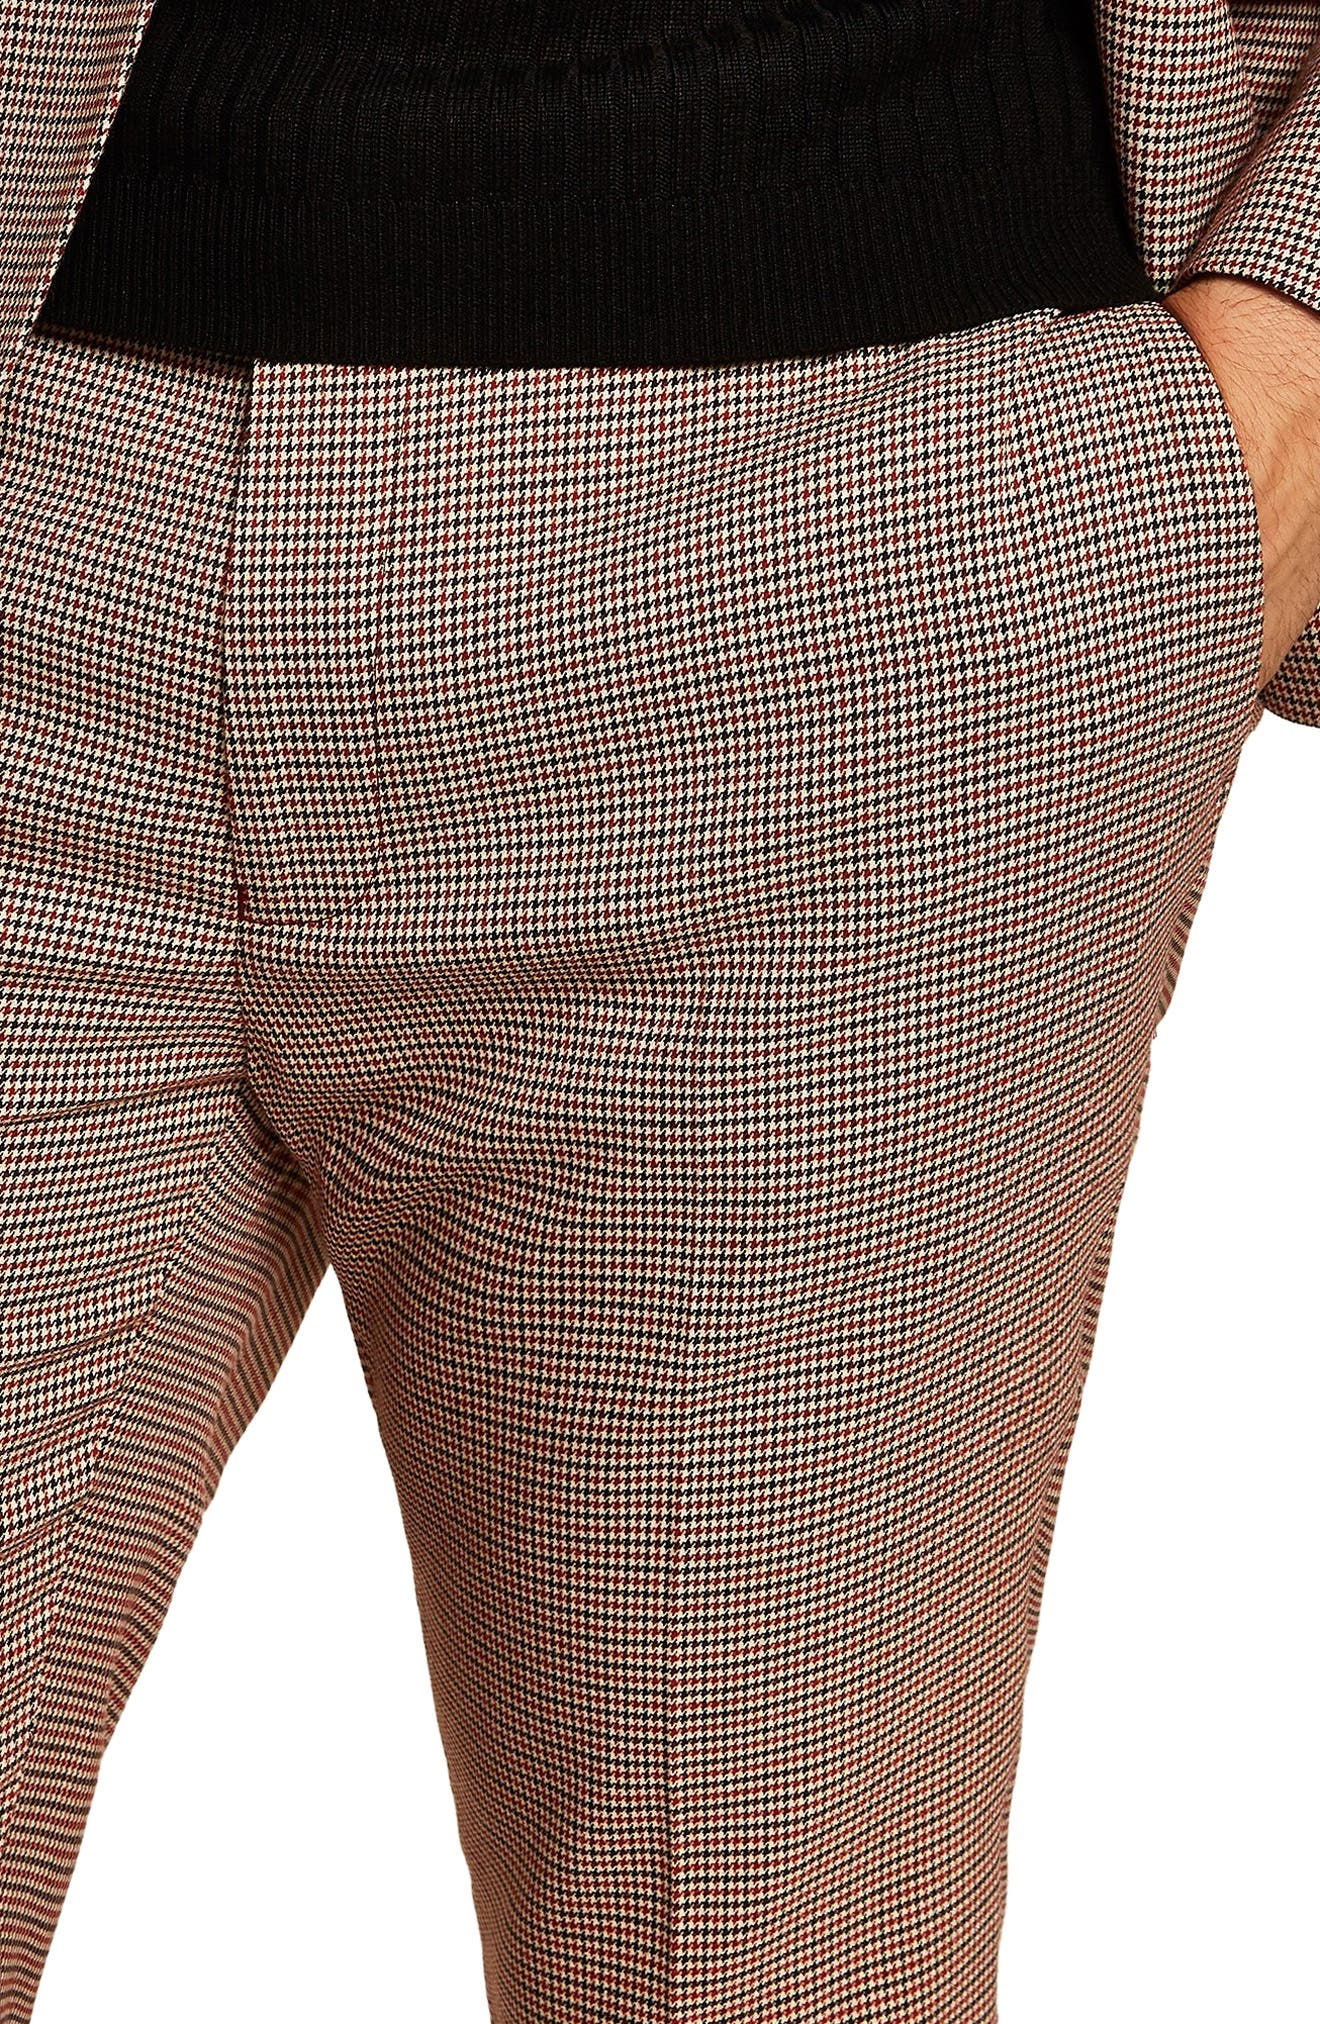 Houndstooth Skinny Fit Trousers,                             Alternate thumbnail 2, color,                             STONE